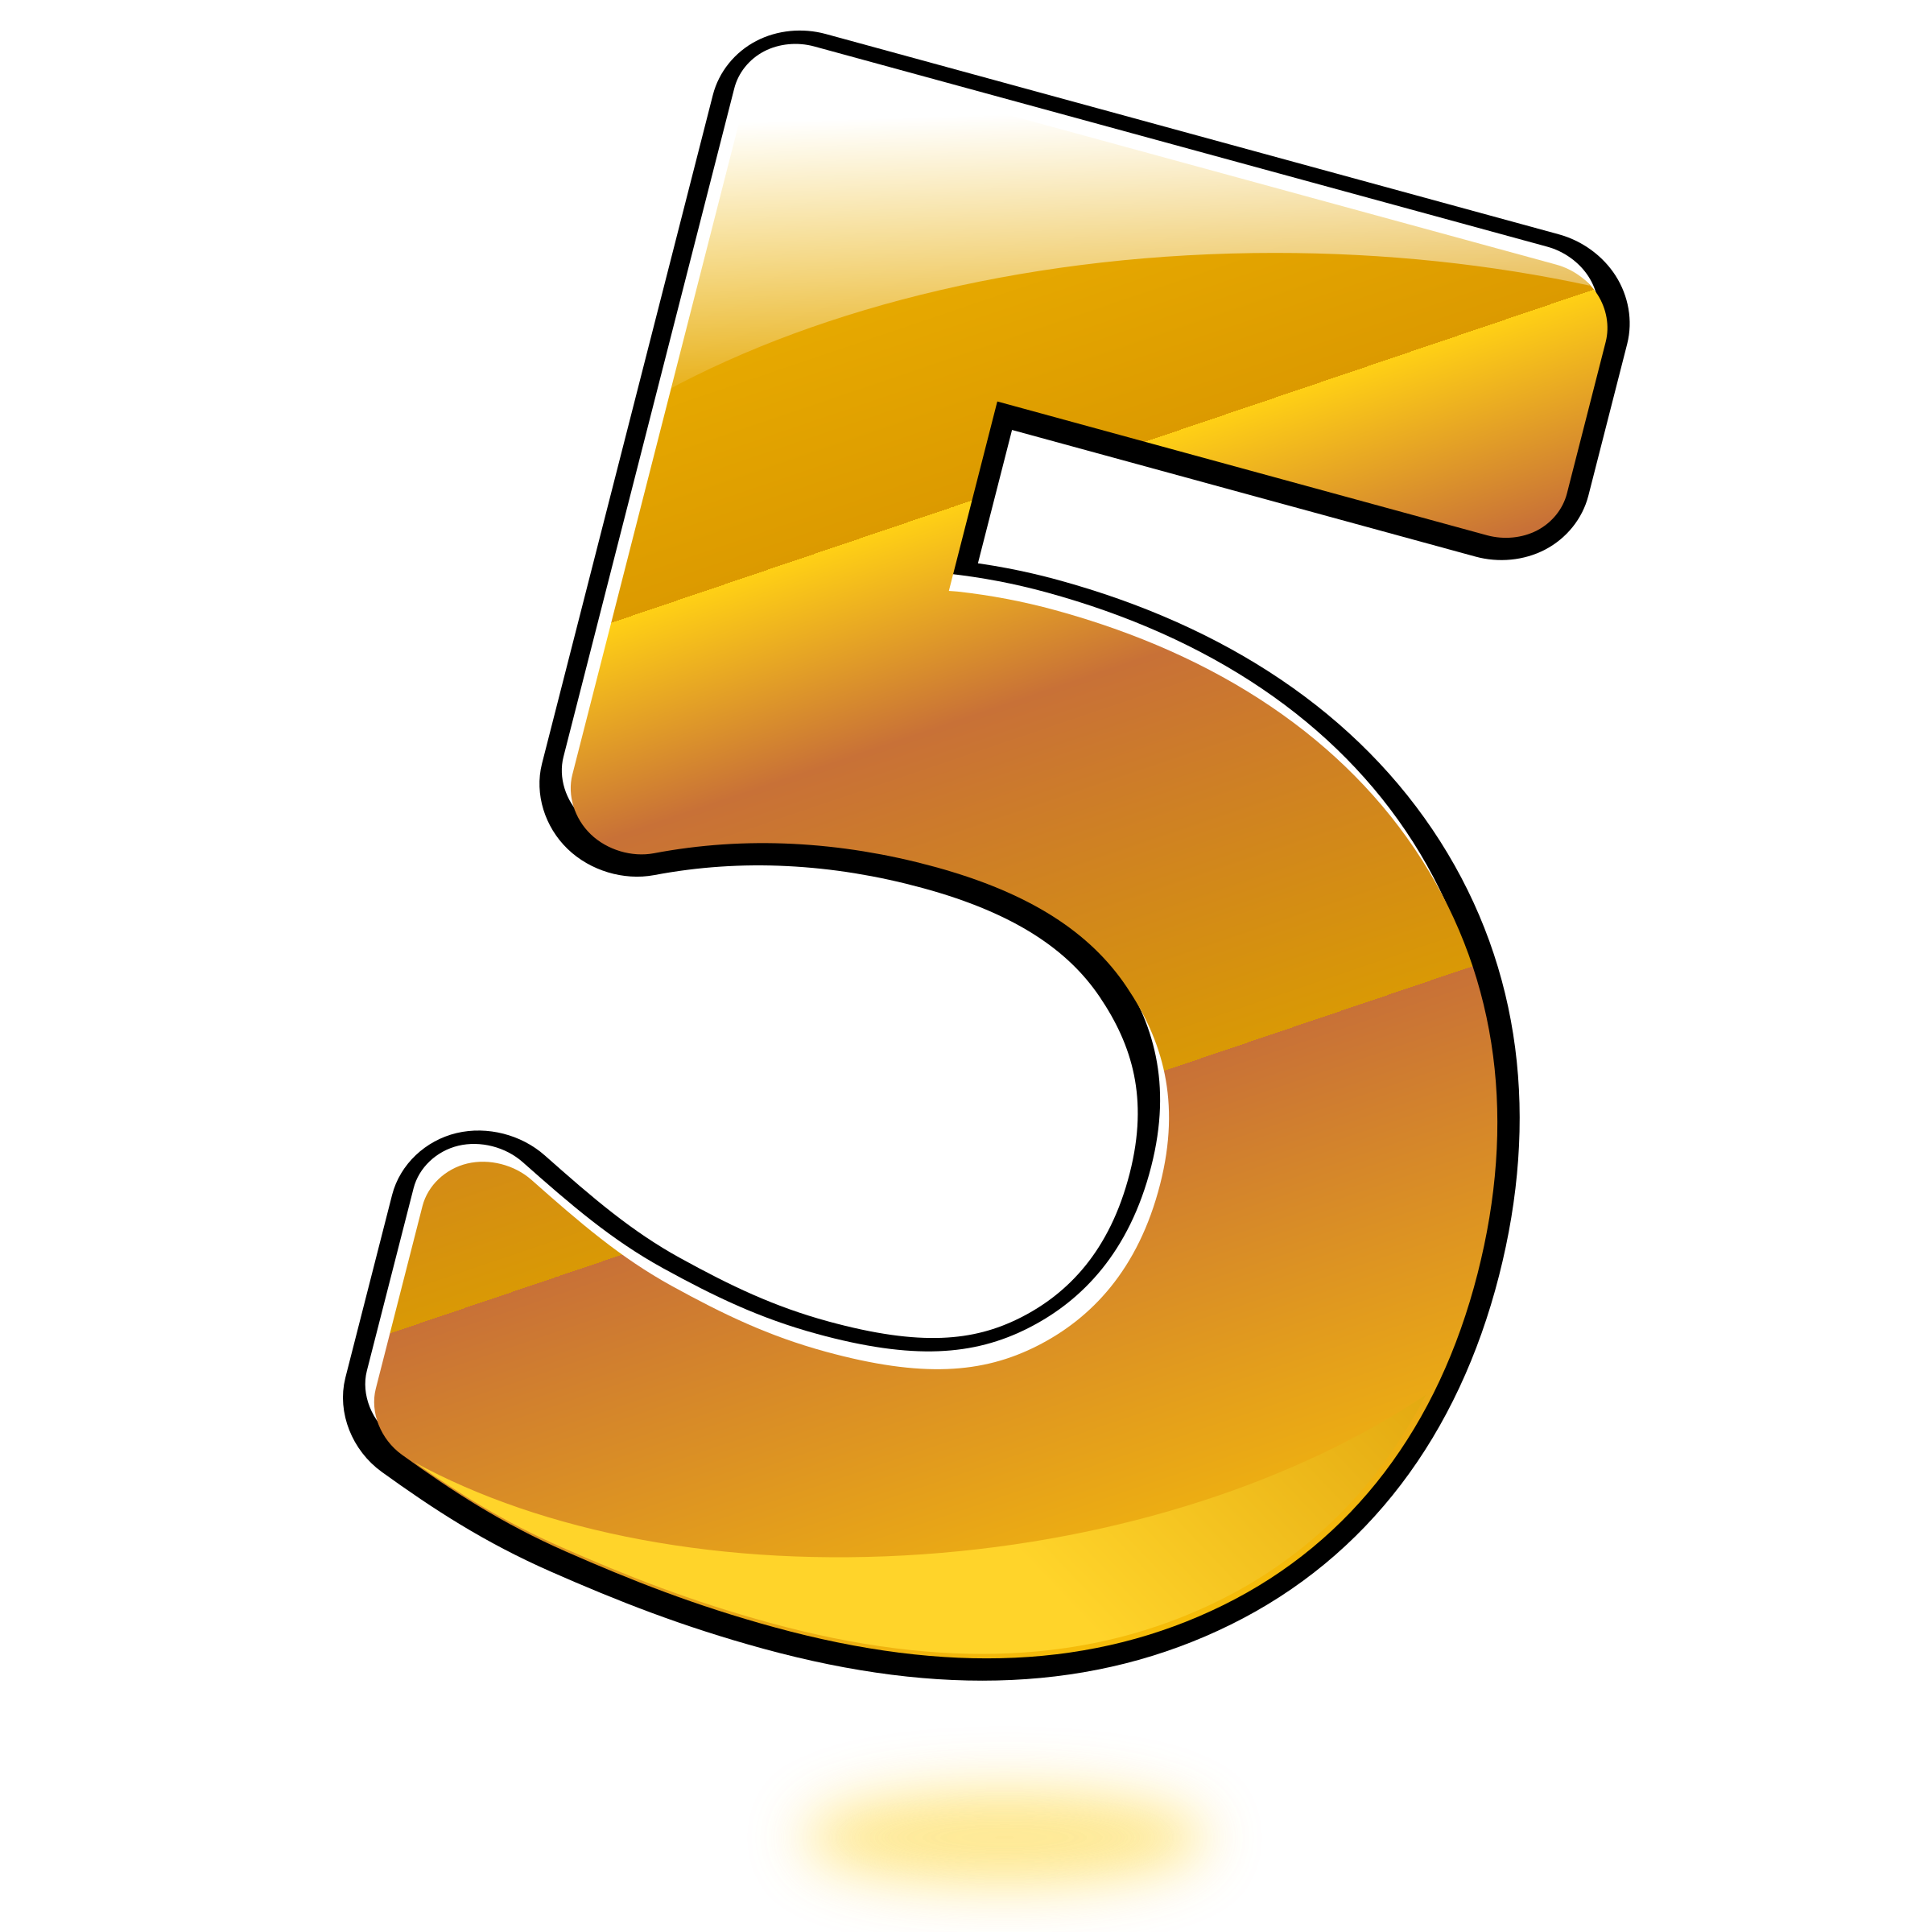 collection of number. 5 clipart transparent